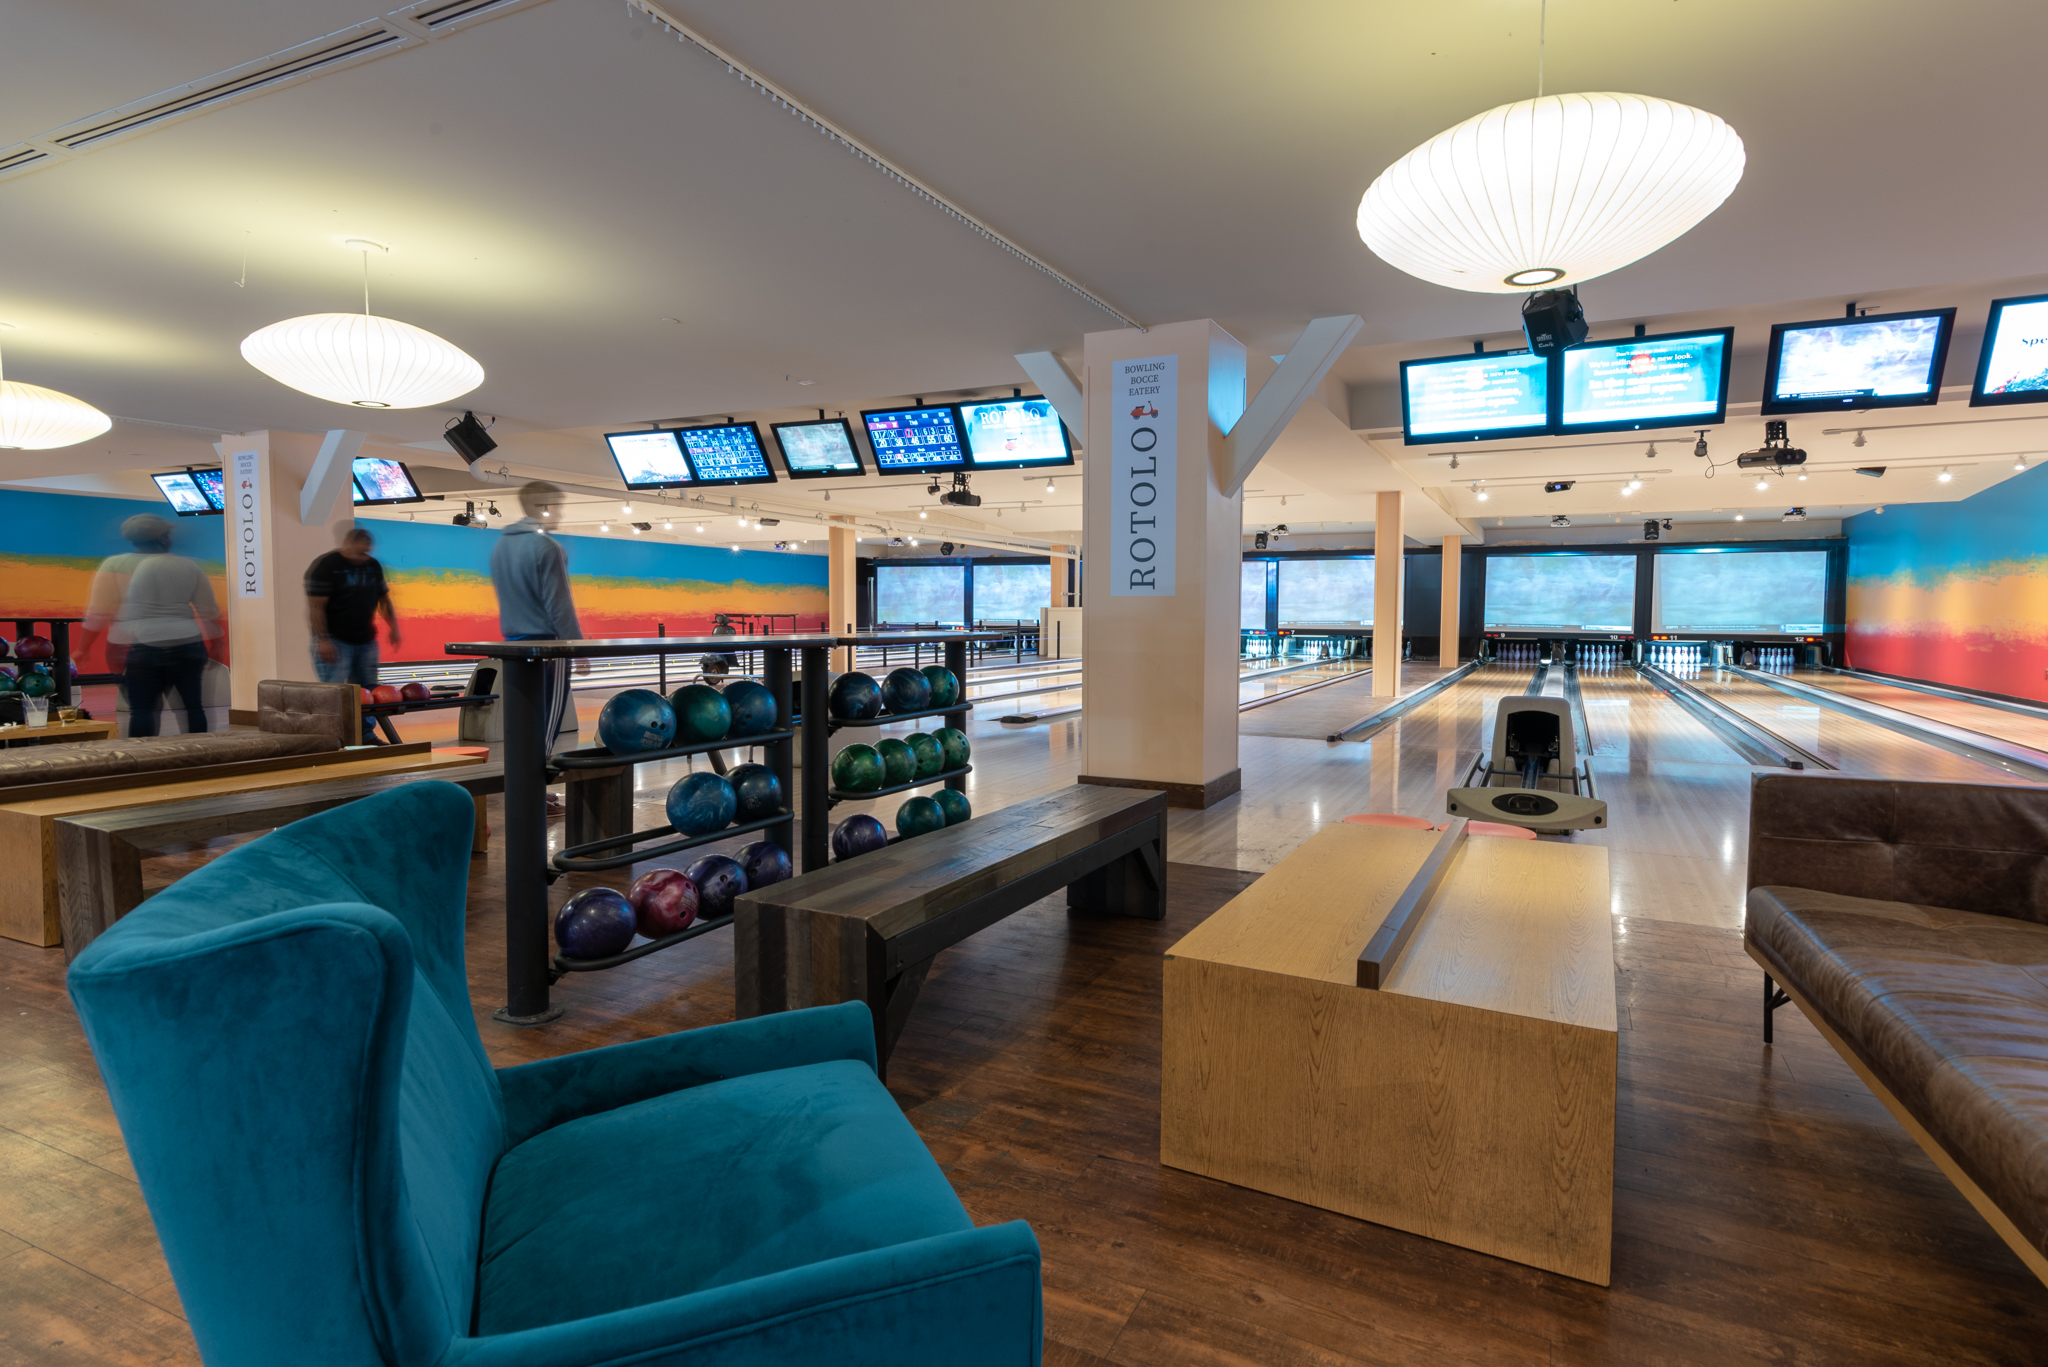 Rotolo sports 16 bowling lanes, a VIP area with private bowling lanes, pool/foosball/ping pong/air hockey/shuffleboard tables, giant checkers, and a bocce court. ADDRESS: 1 Levee Way (41071) / Image: Phil Armstrong, Cincinnati Refined // Published: 1.12.19